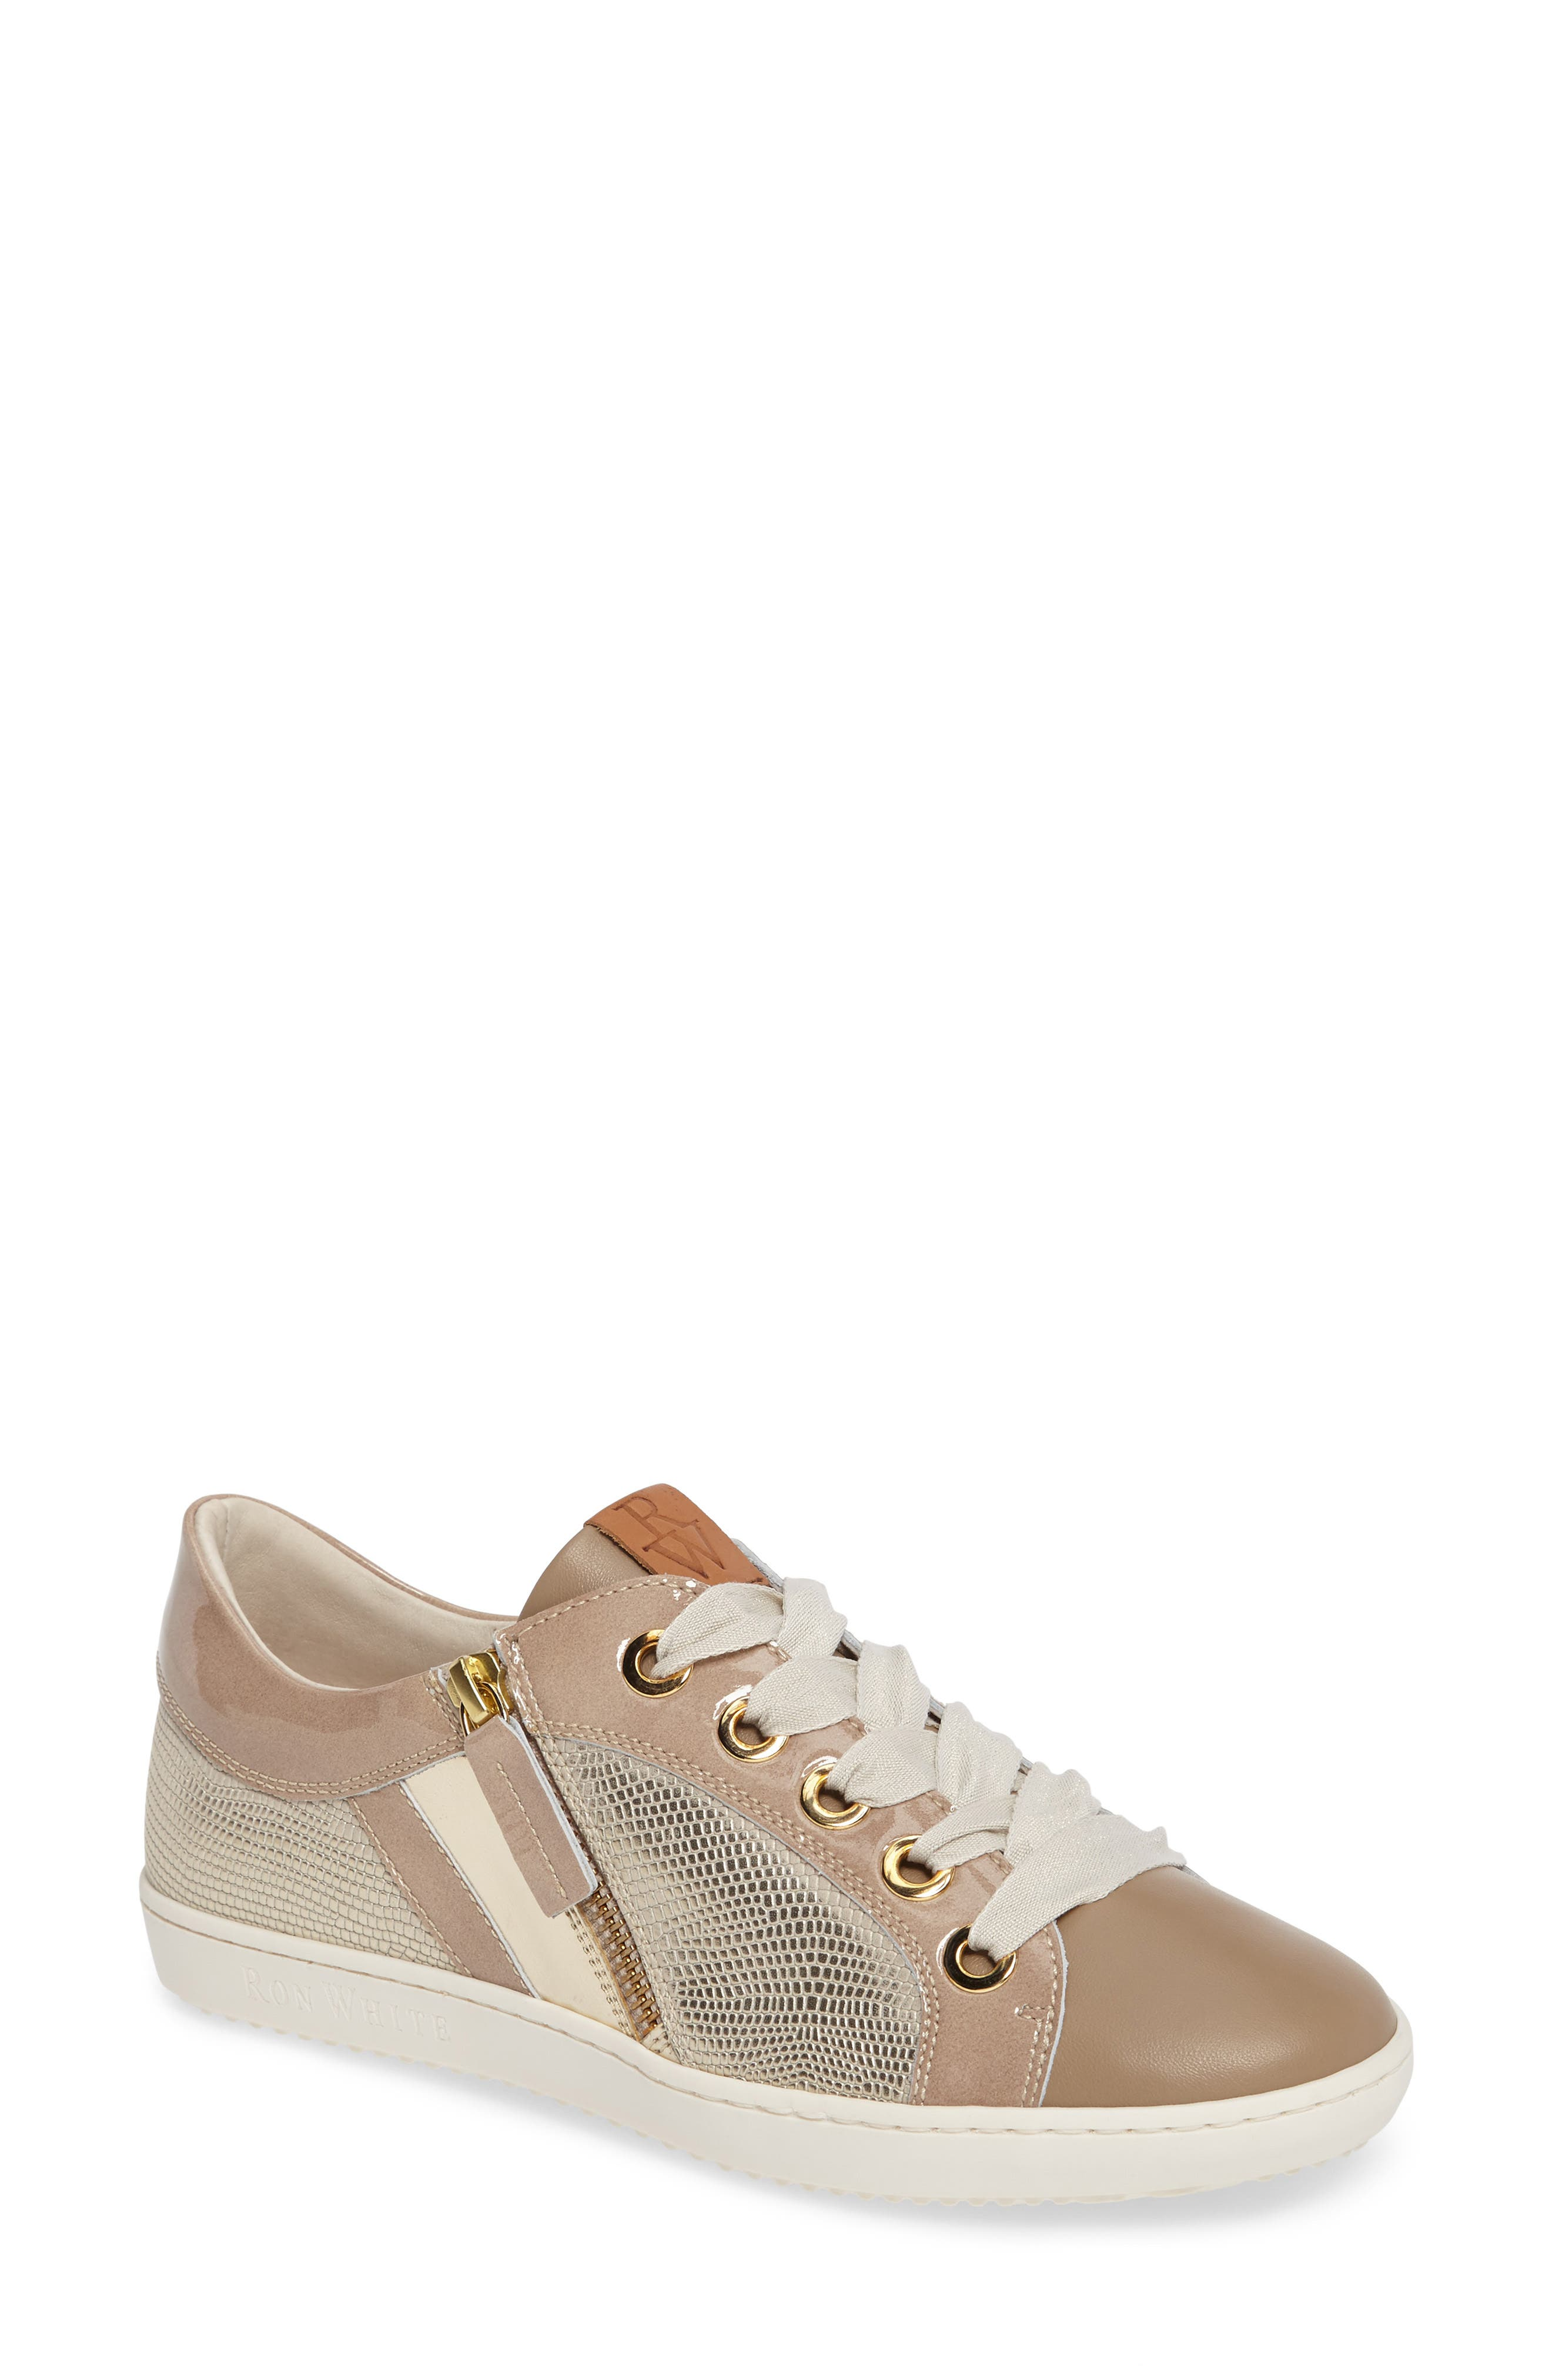 May Sneaker,                         Main,                         color, Nude/ Platino Leather